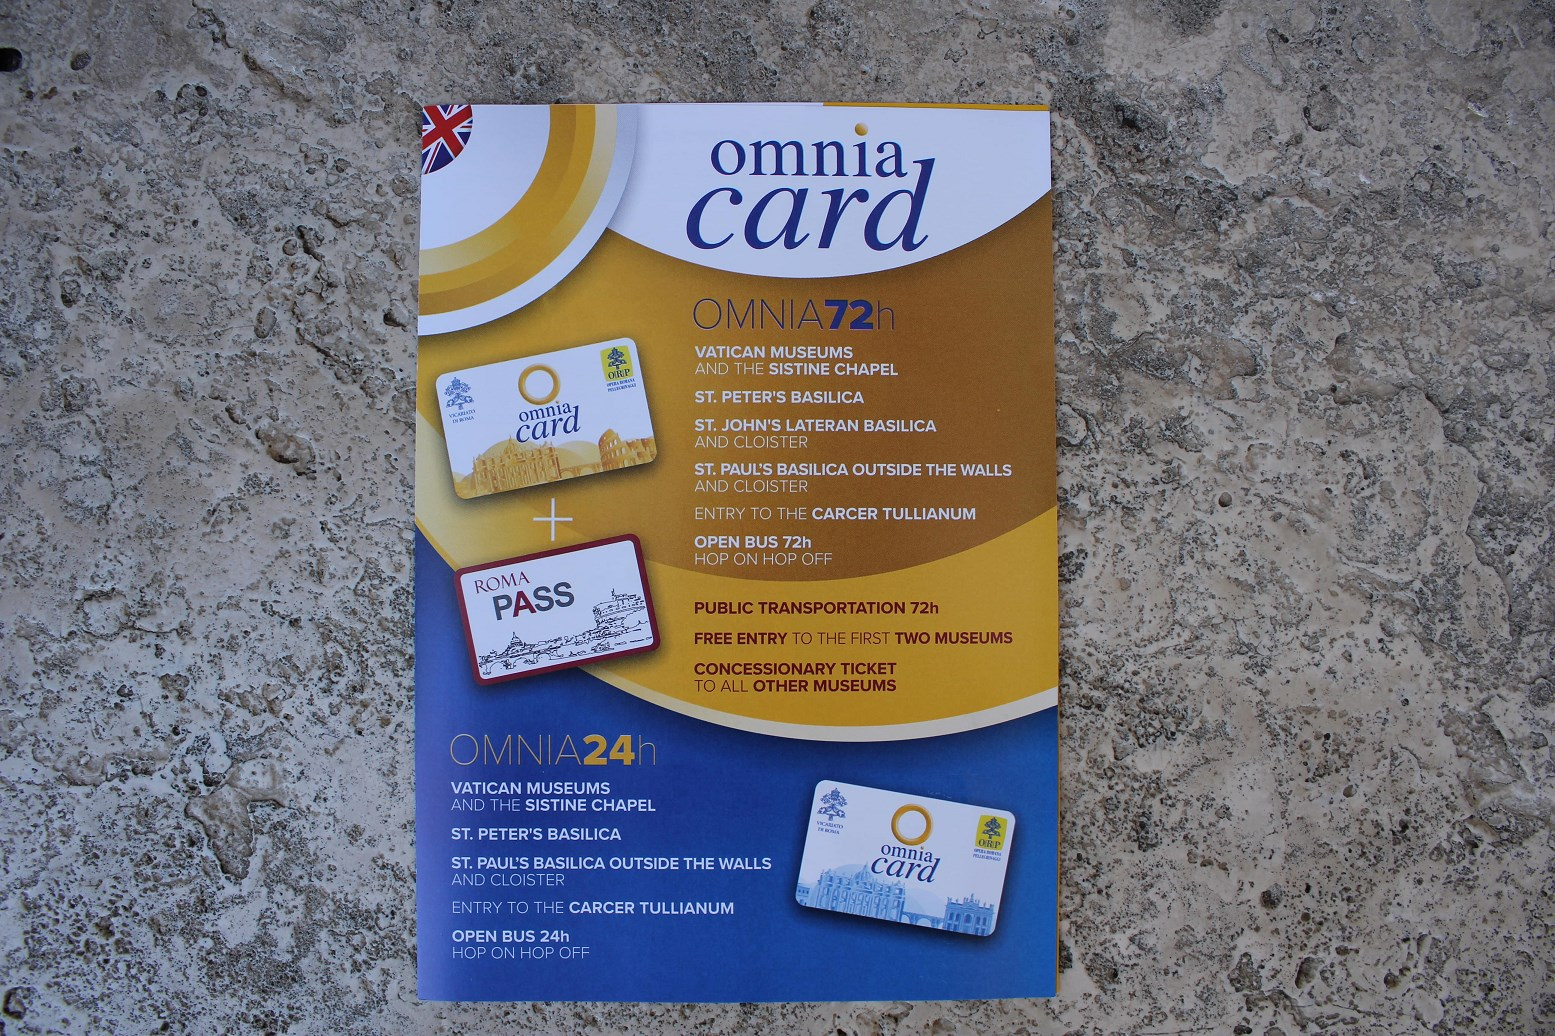 tips on visiting the vatican omnia card rome